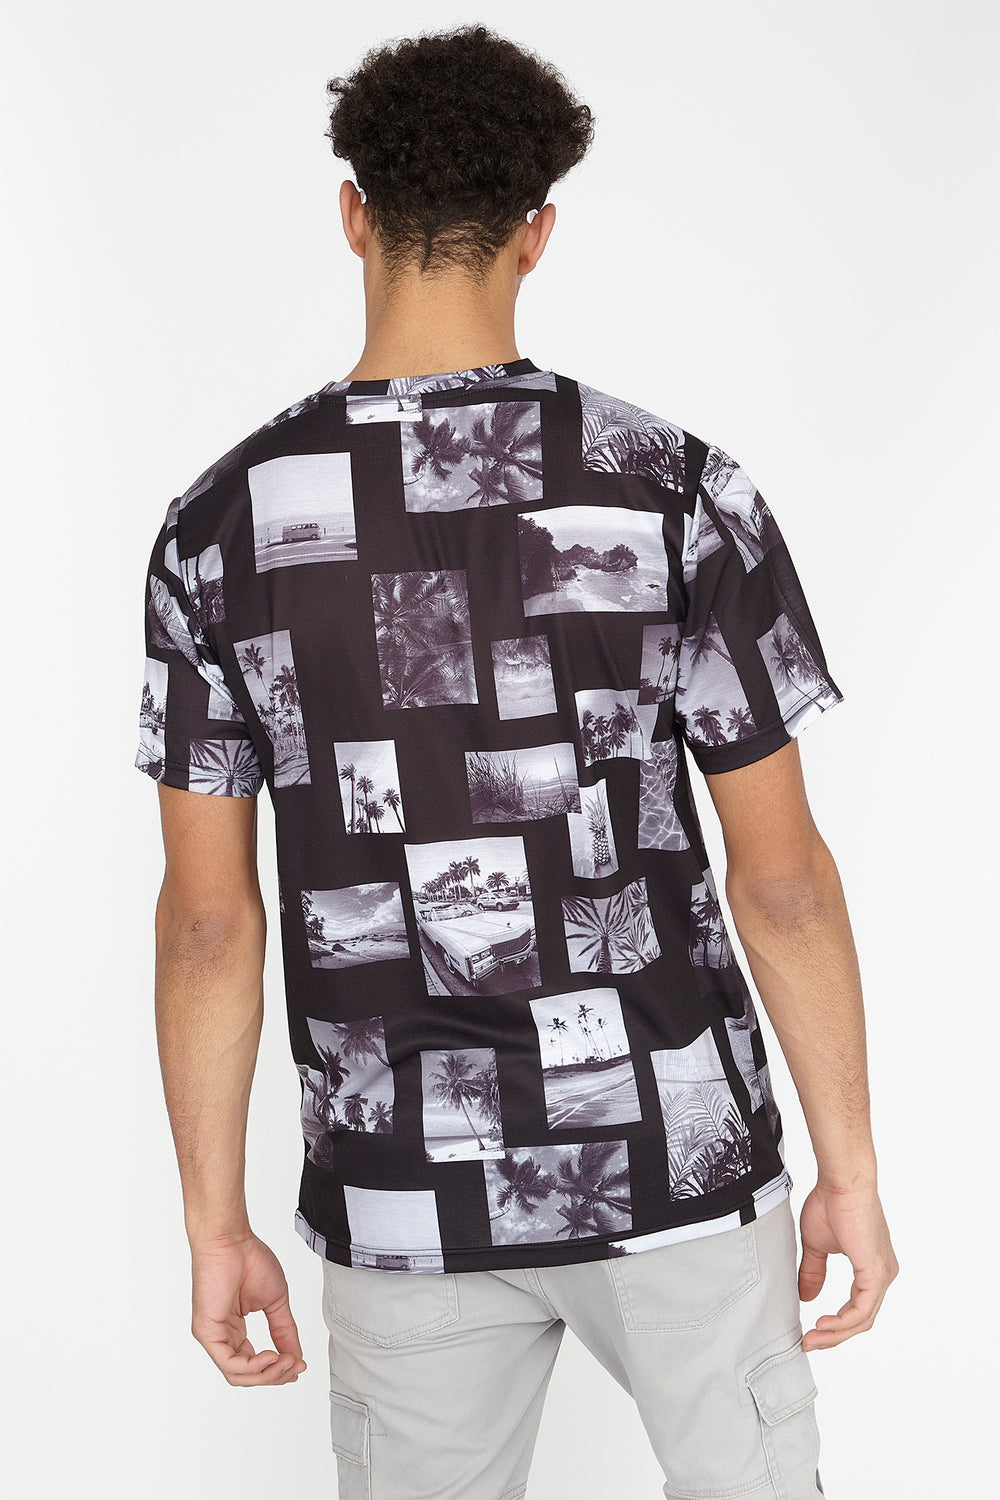 California Photo Collage Graphic T-Shirt Black